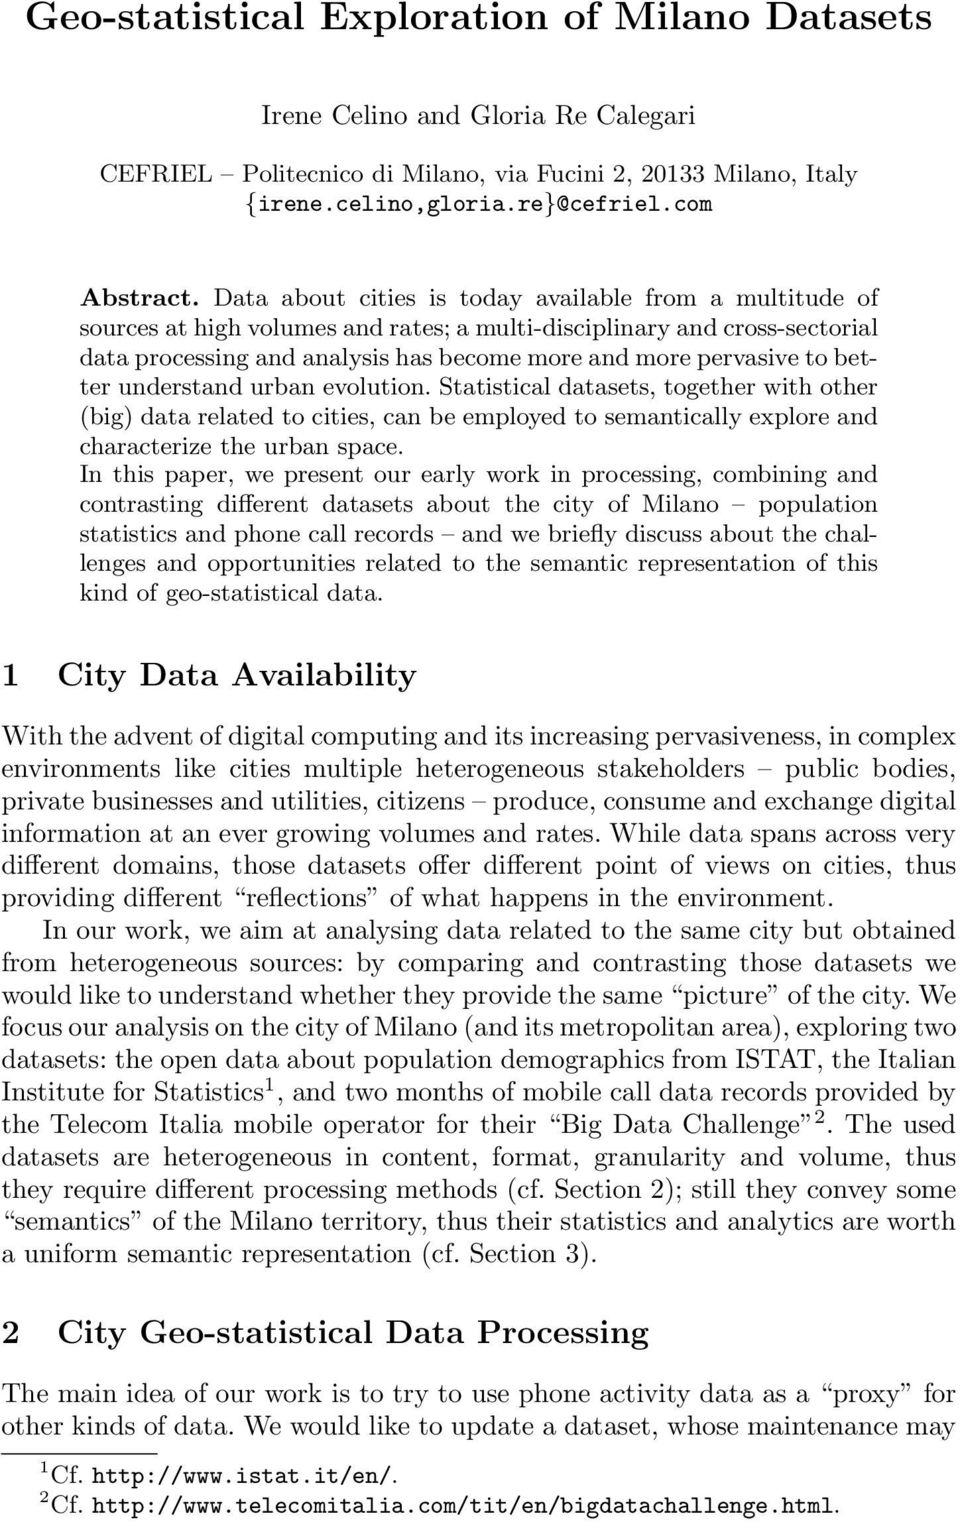 better understand urban evolution. Statistical datasets, together with other (big) data related to cities, can be employed to semantically explore and characterize the urban space.